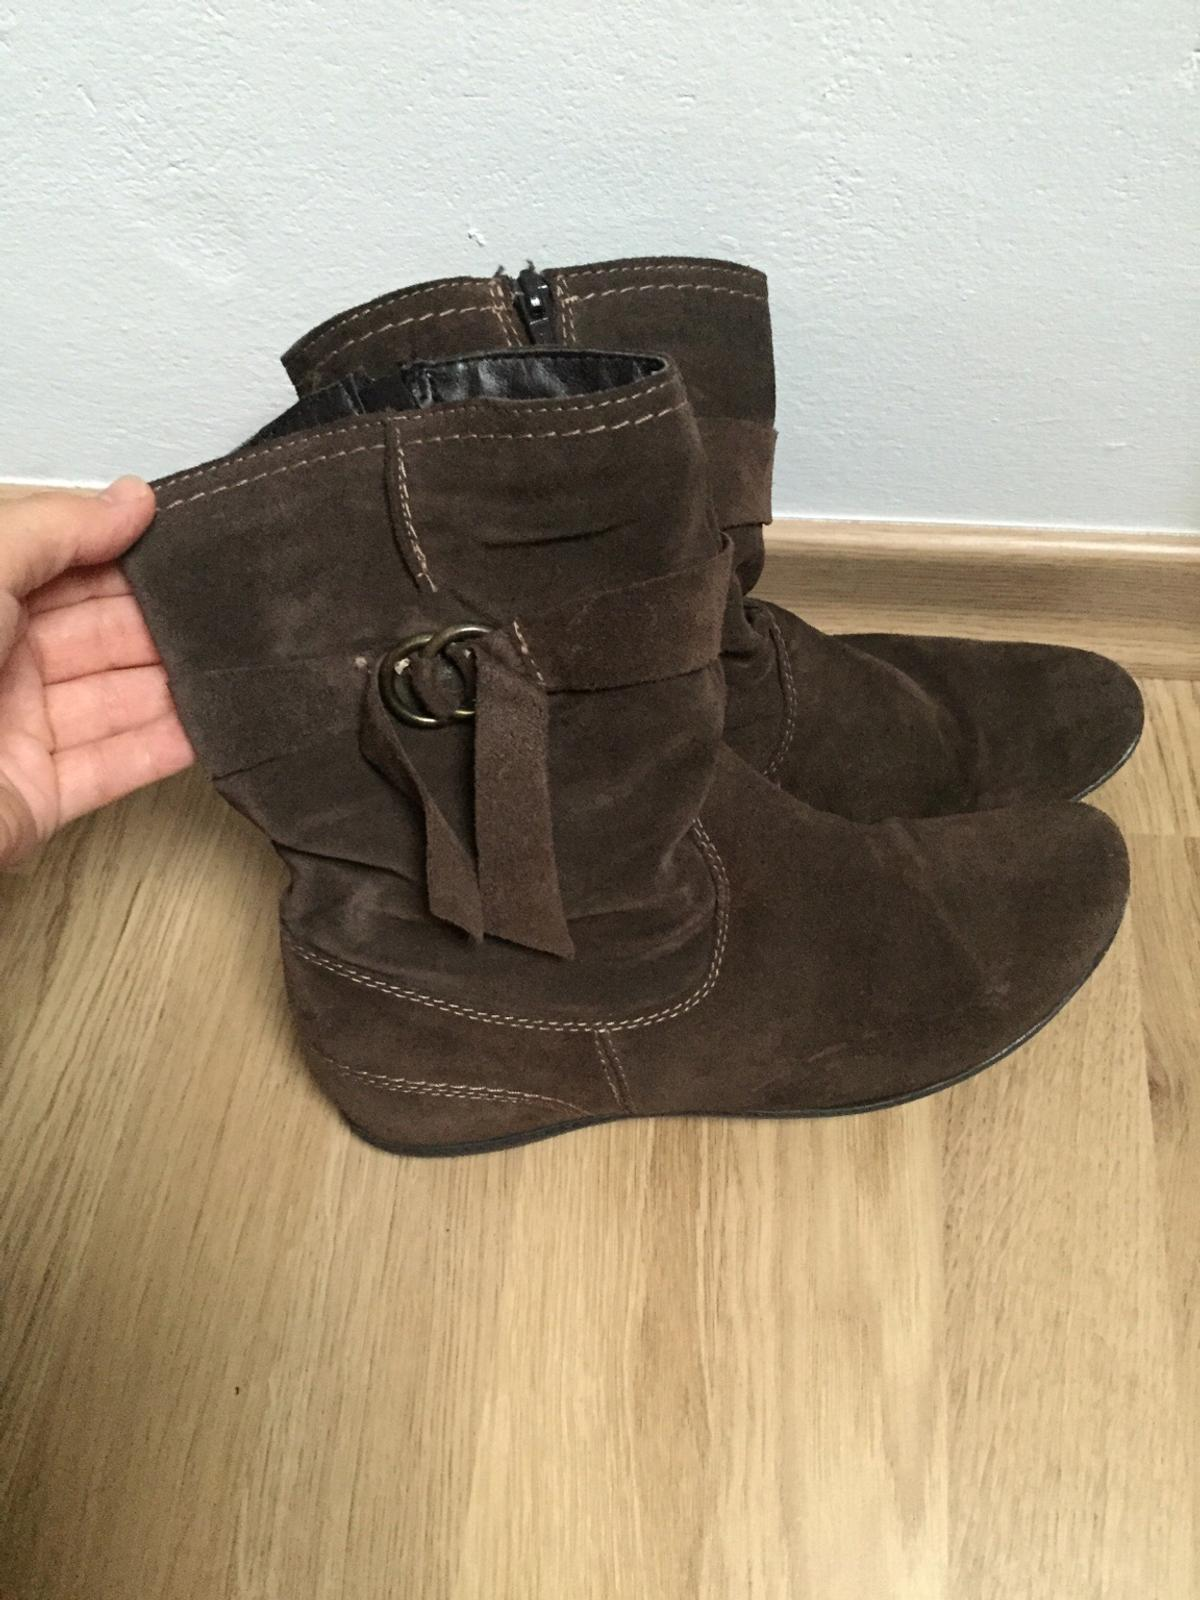 In Tamaris €15 Wildleder For Stiefelette Beesten 00 49832 sxrthdCBQo